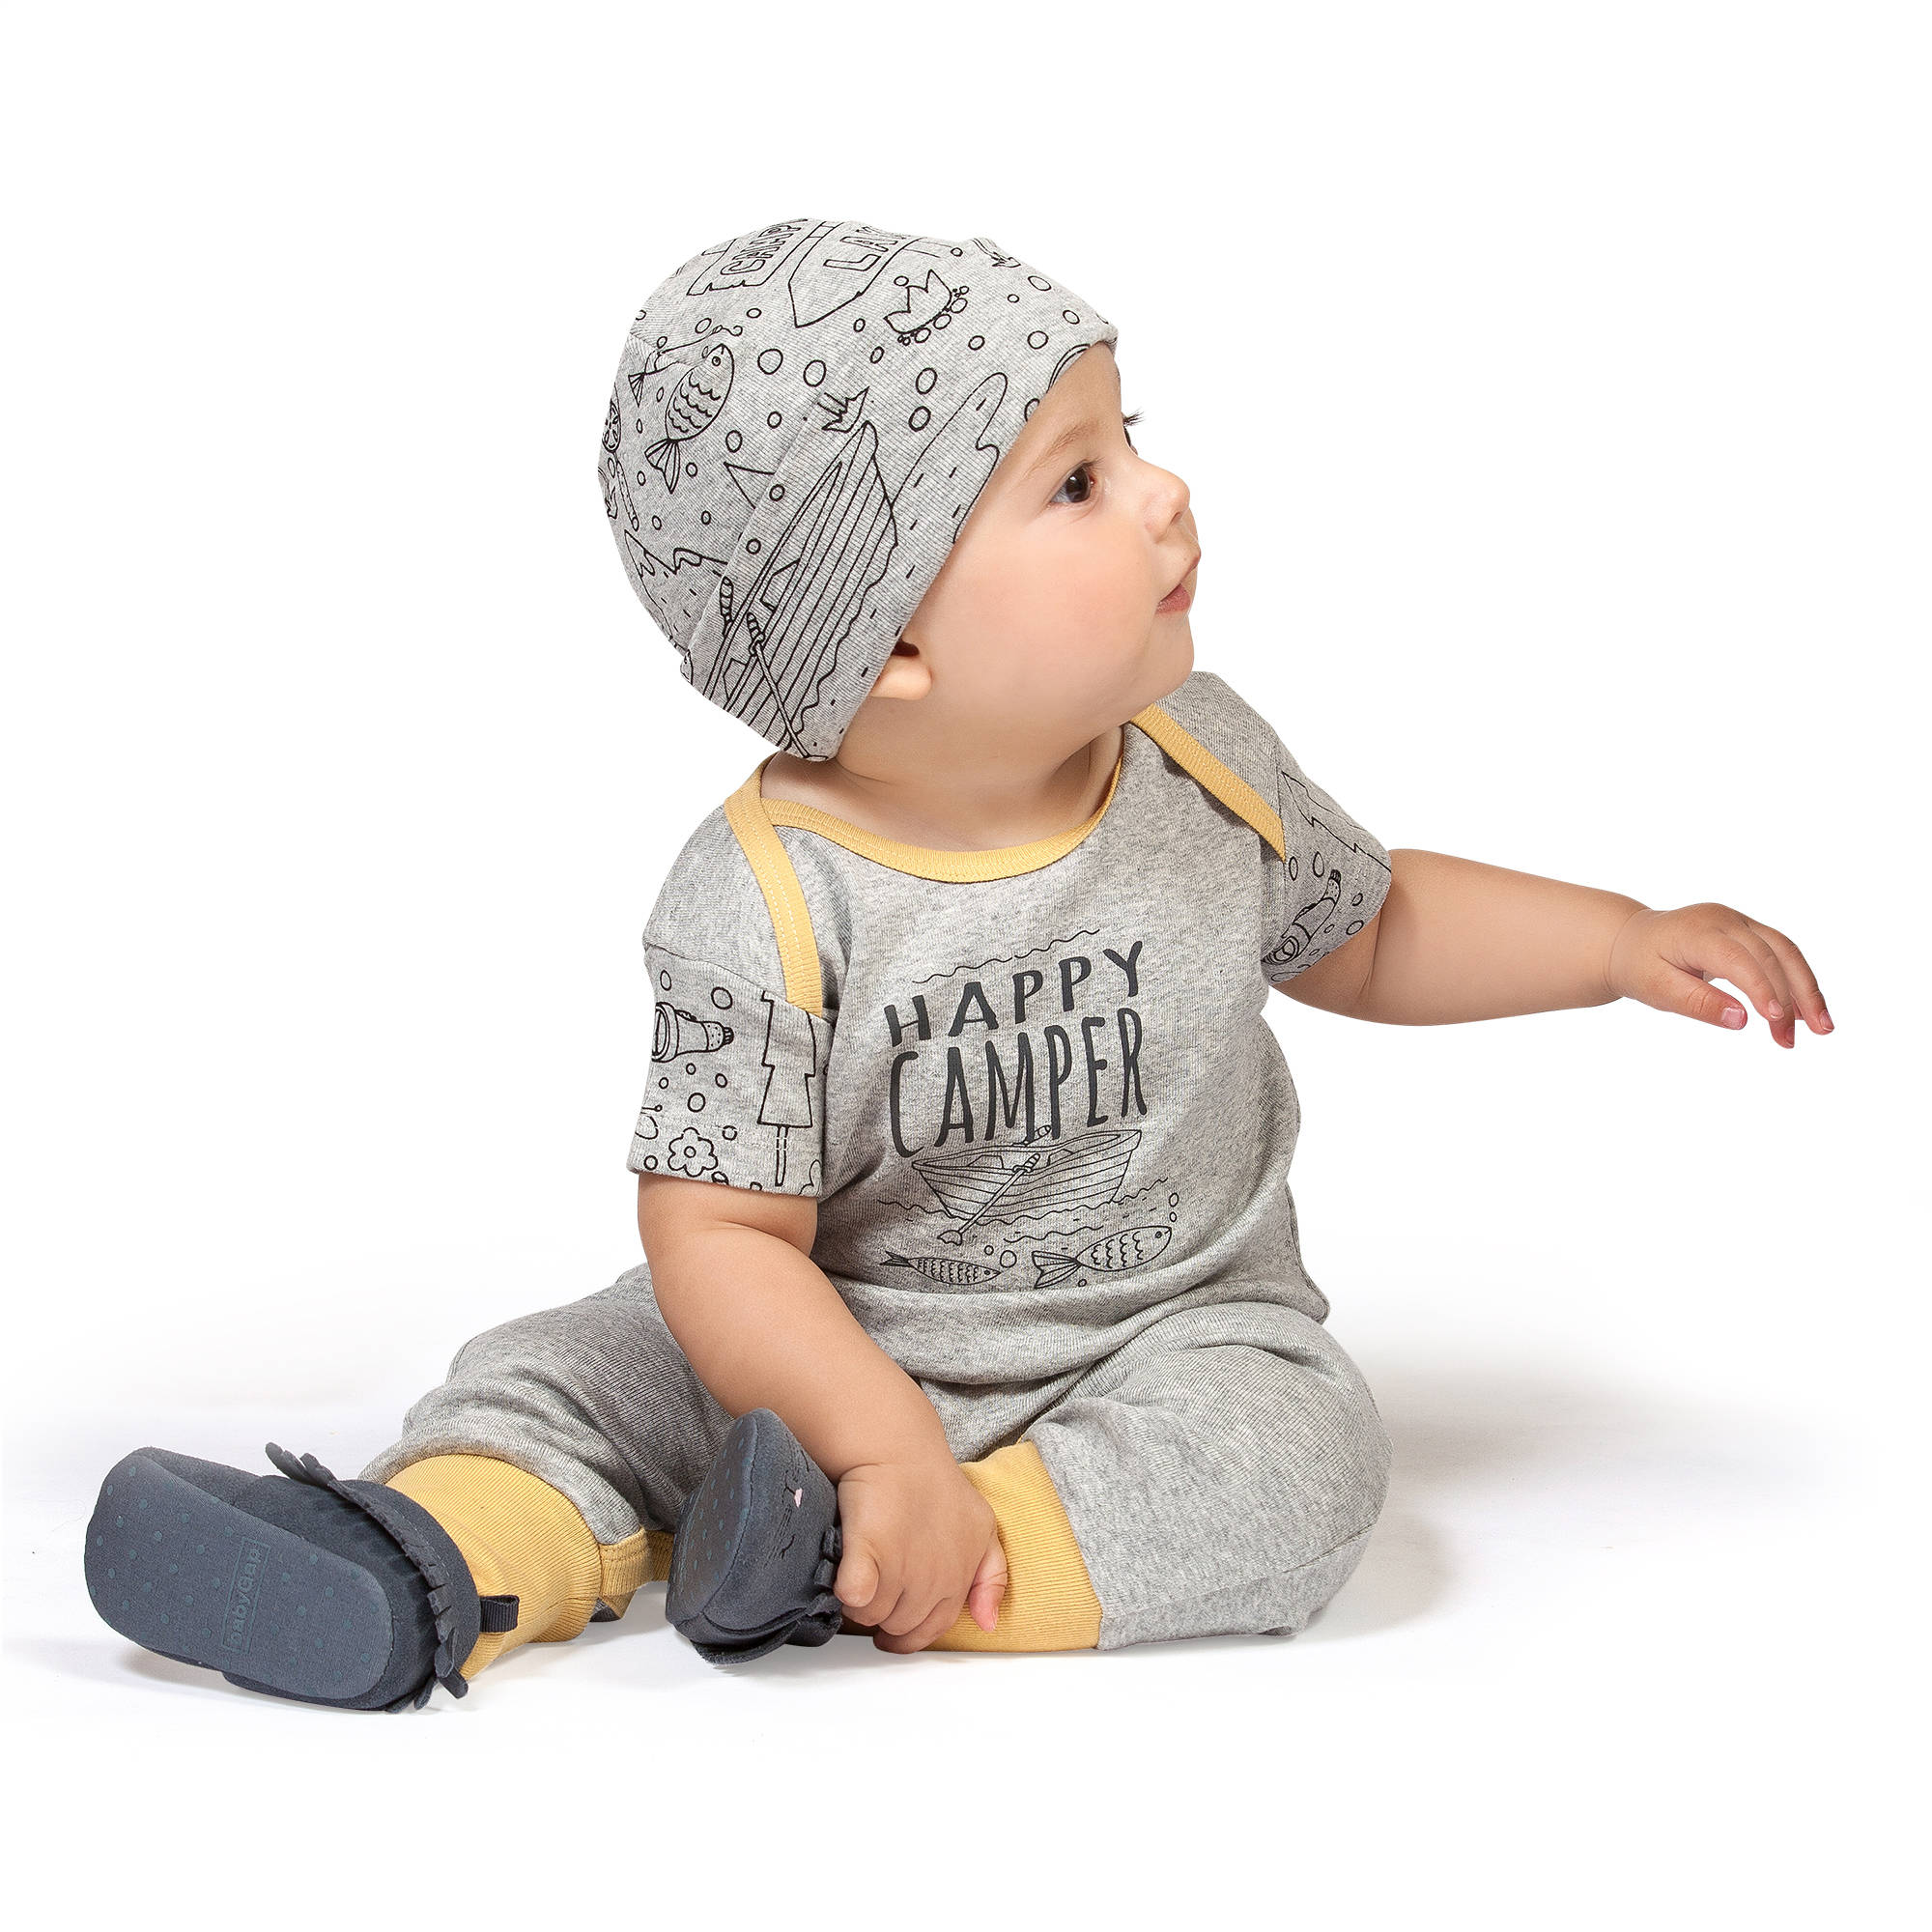 SPRING SALE Newborn Baby Boy Outfit Summer Baby Boy esie Outfit